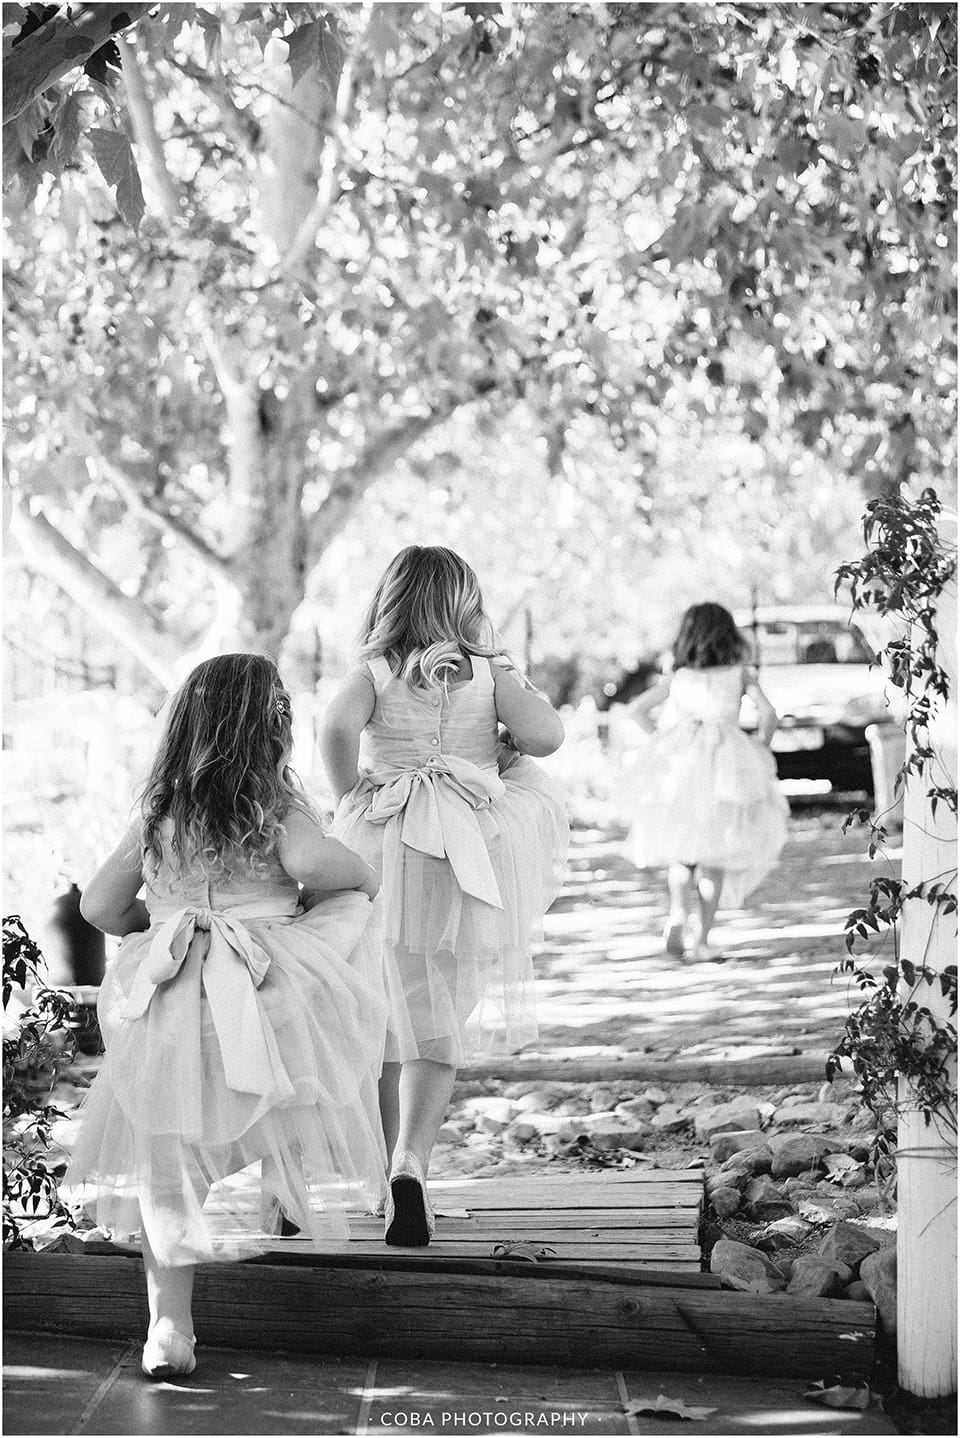 Carlo & Nicolette - Langkloof Roses - Coba Photography (61)